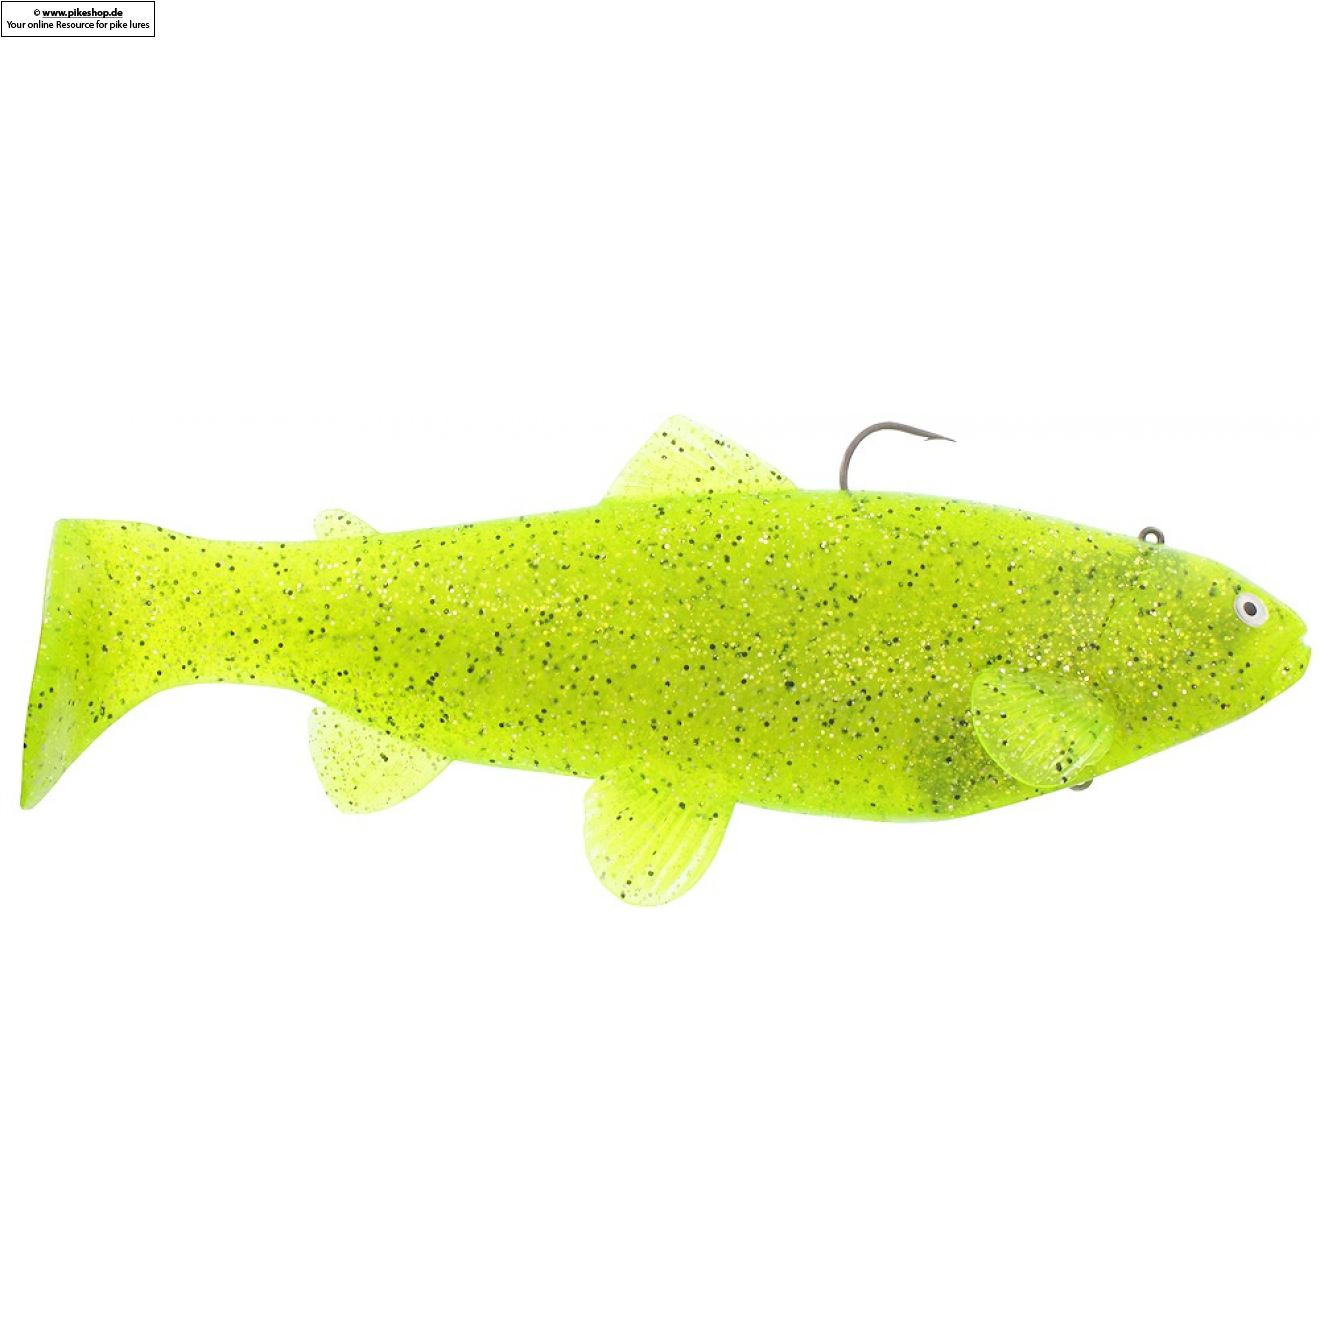 Boot Tail (Sinker) - 25cm (10 Zoll) - CA Chartreuse Pepper